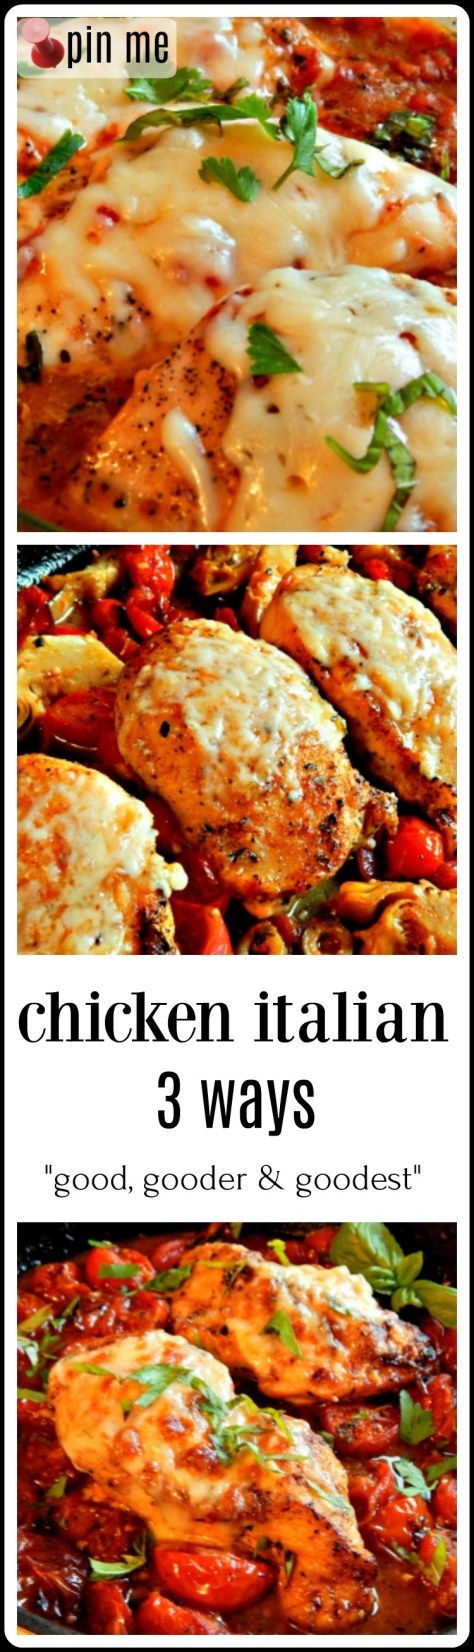 Chicken Italian made three ways, from simple budget friendly to more complicated gourmet